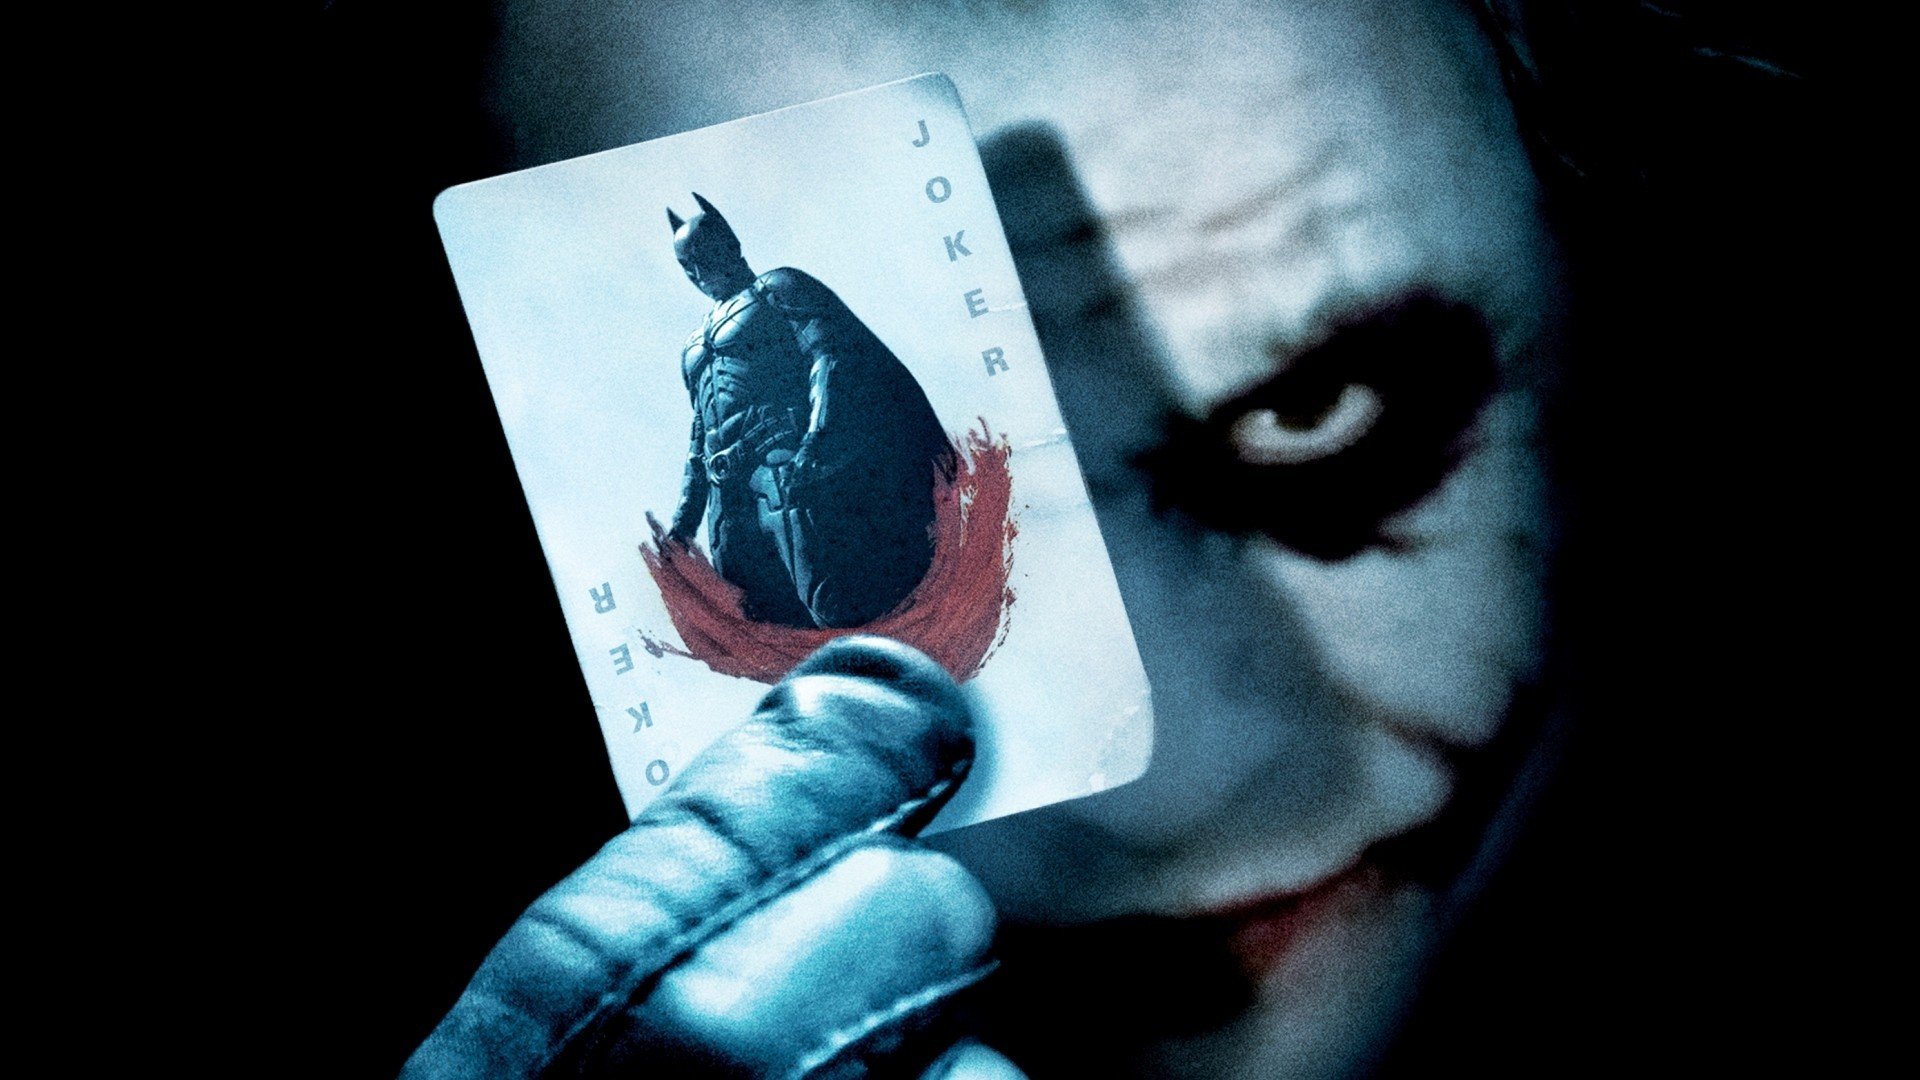 Batman Joker Card Wallpapers HD Wallpapers 1920x1080